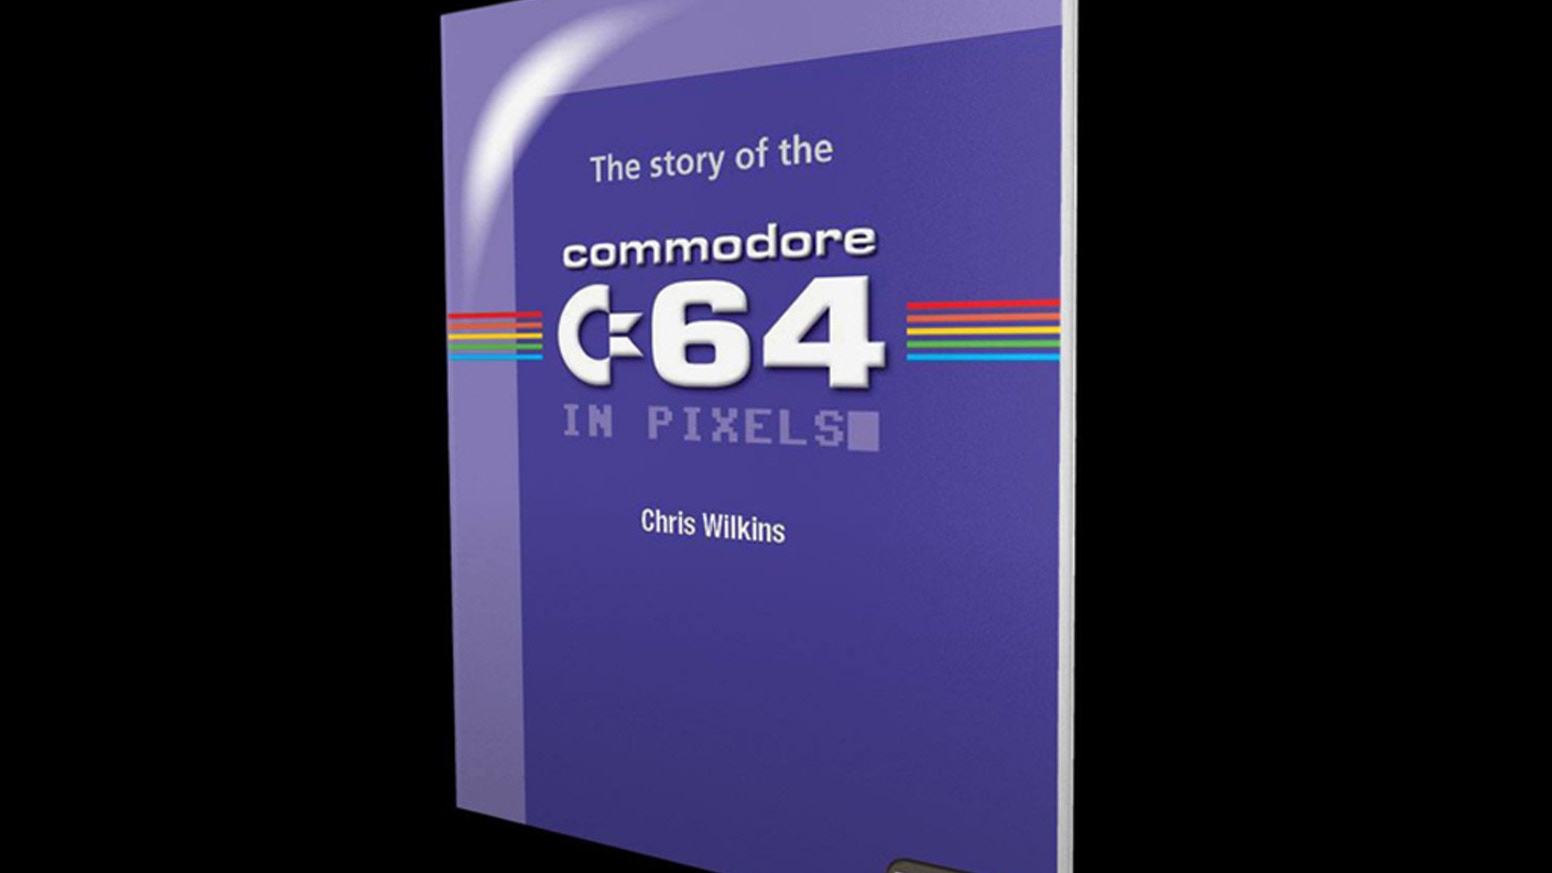 The story of the Commodore 64 in pixels by Chris Wilkins.